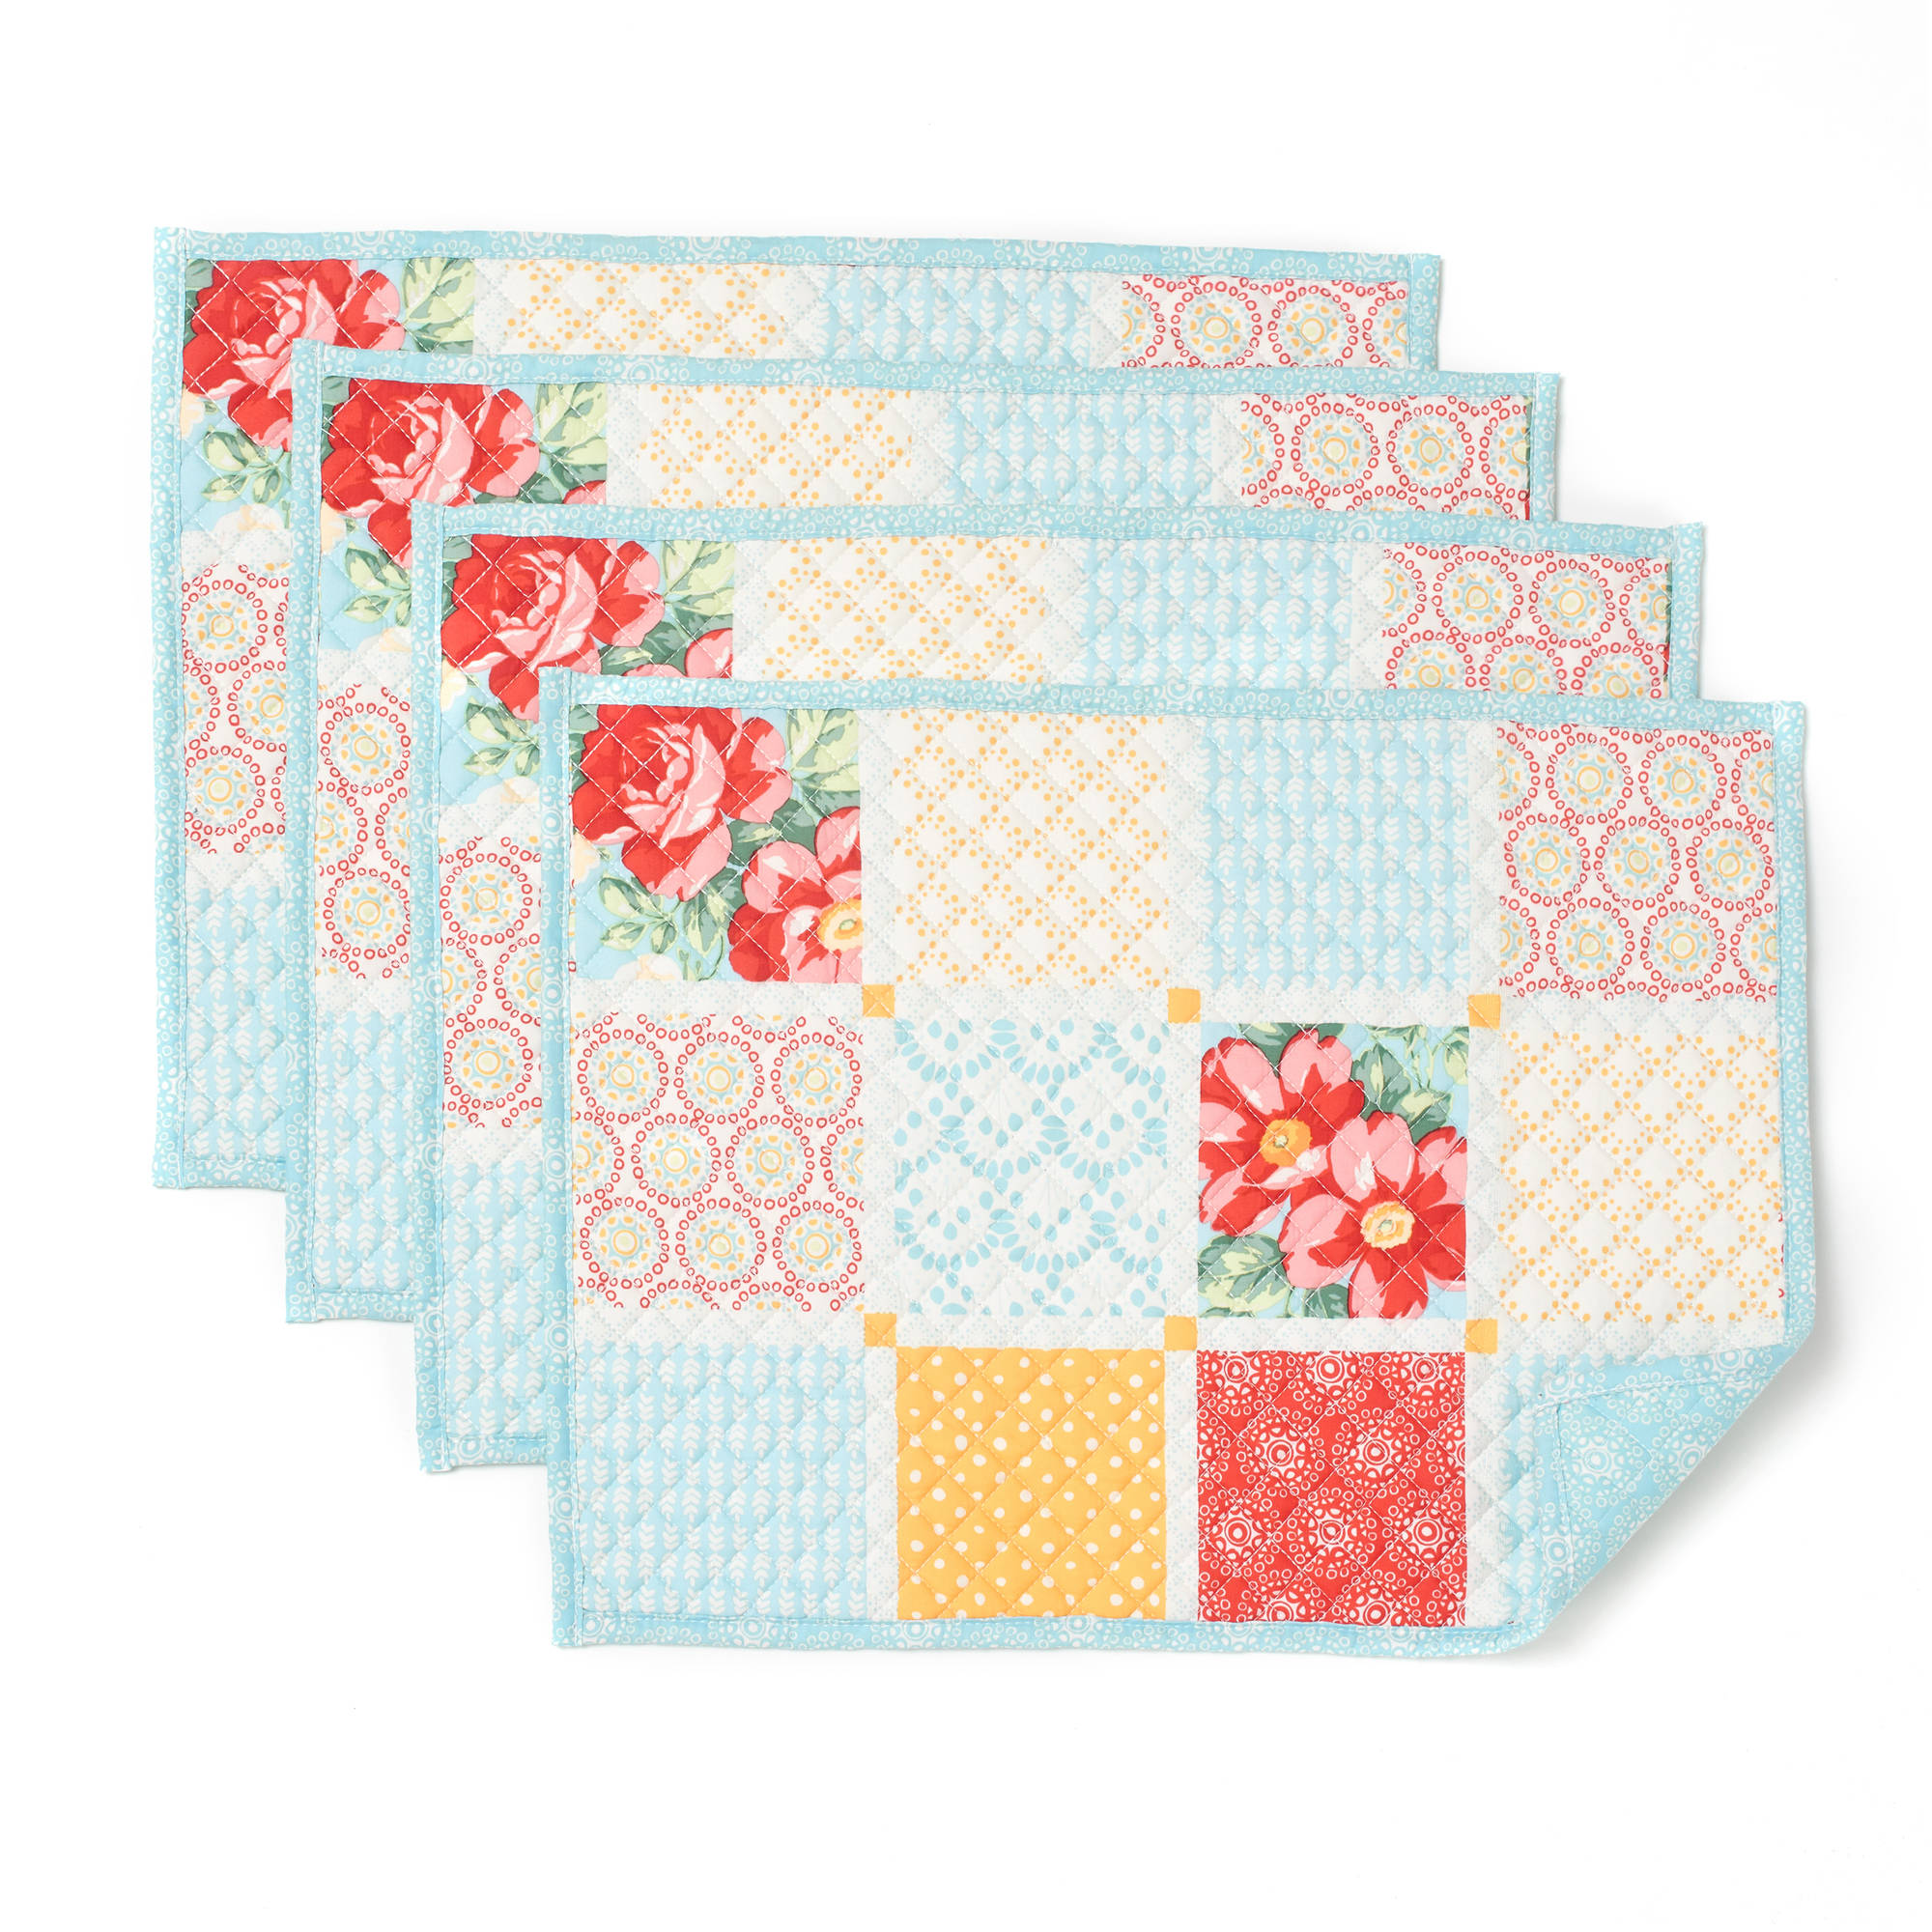 The Pioneer Woman Diamond Patchwork Placemat, Pack of 4 by TOWN & COUNTRY LINEN